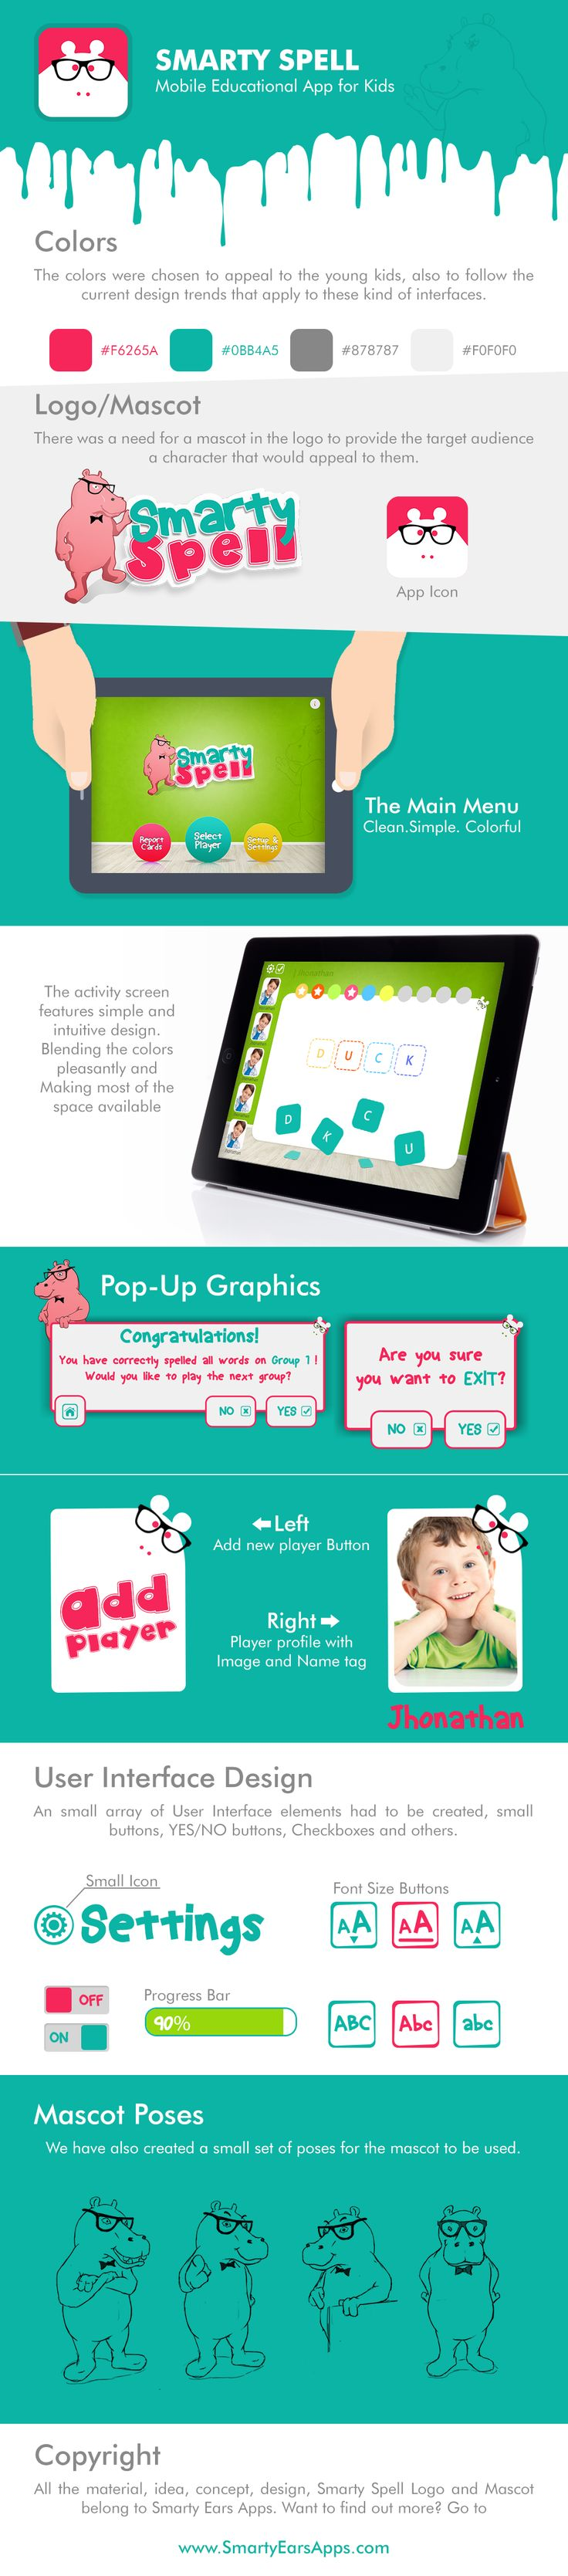 83 best My Work - Graphic Design images on Pinterest | Graphics ...